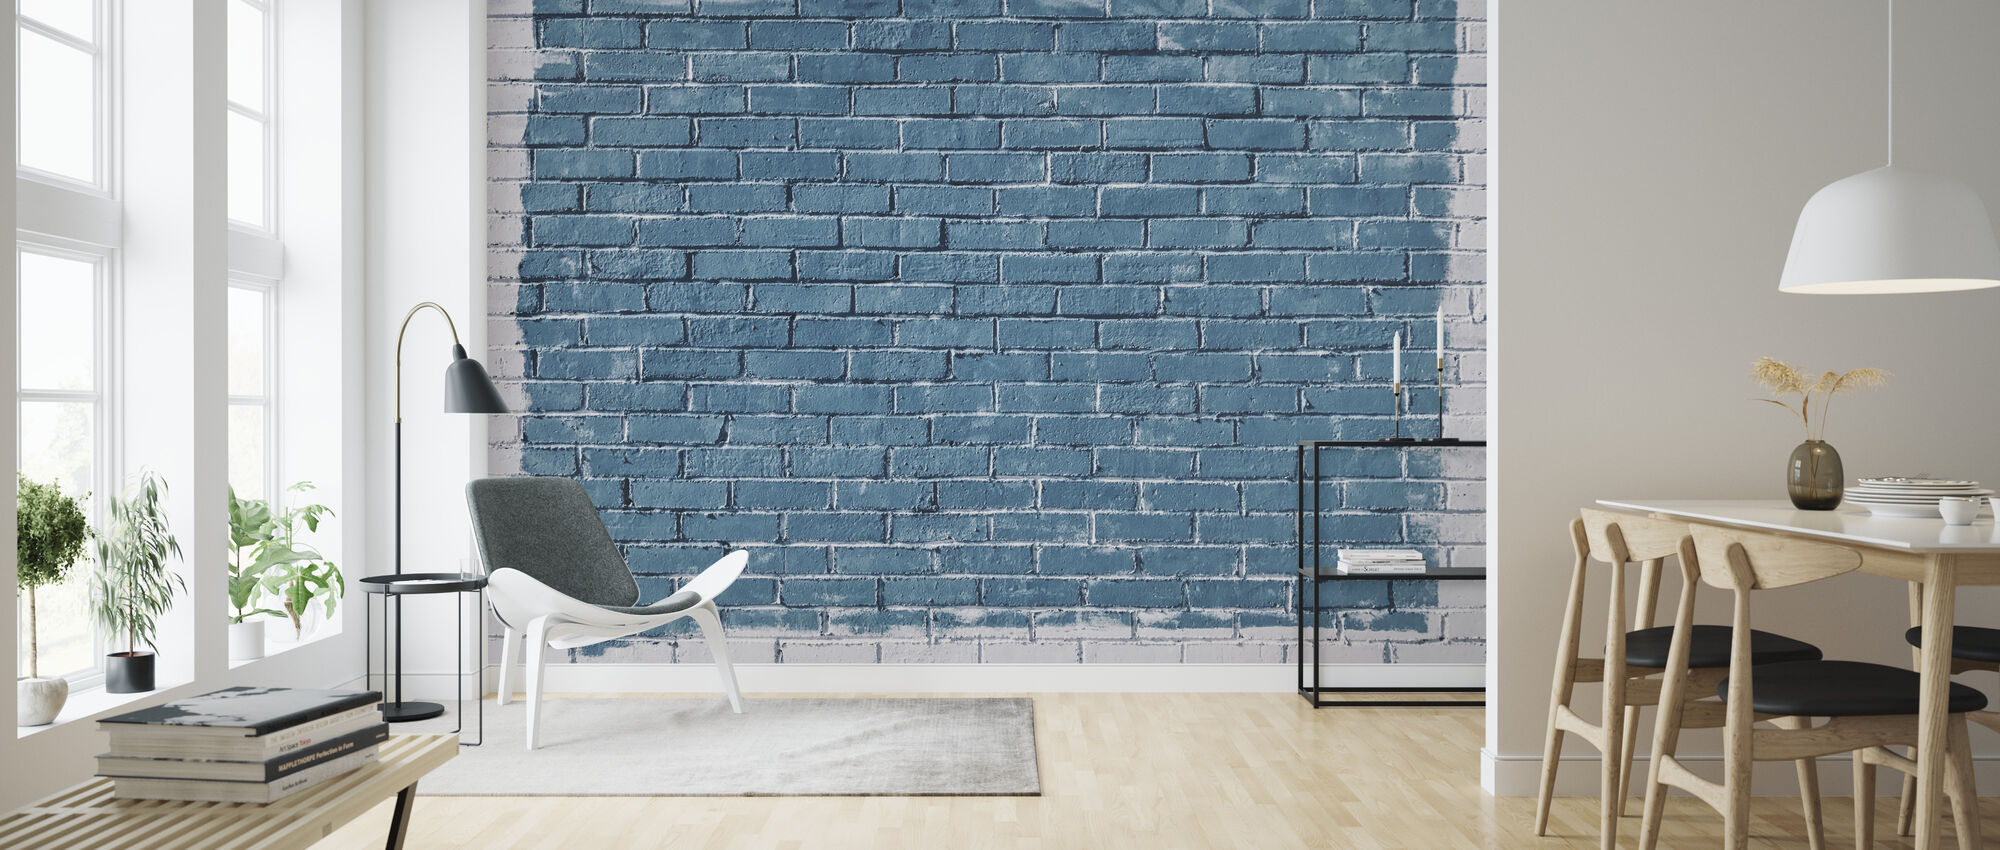 White and Blue Brick Wall - Wallpaper - Living Room